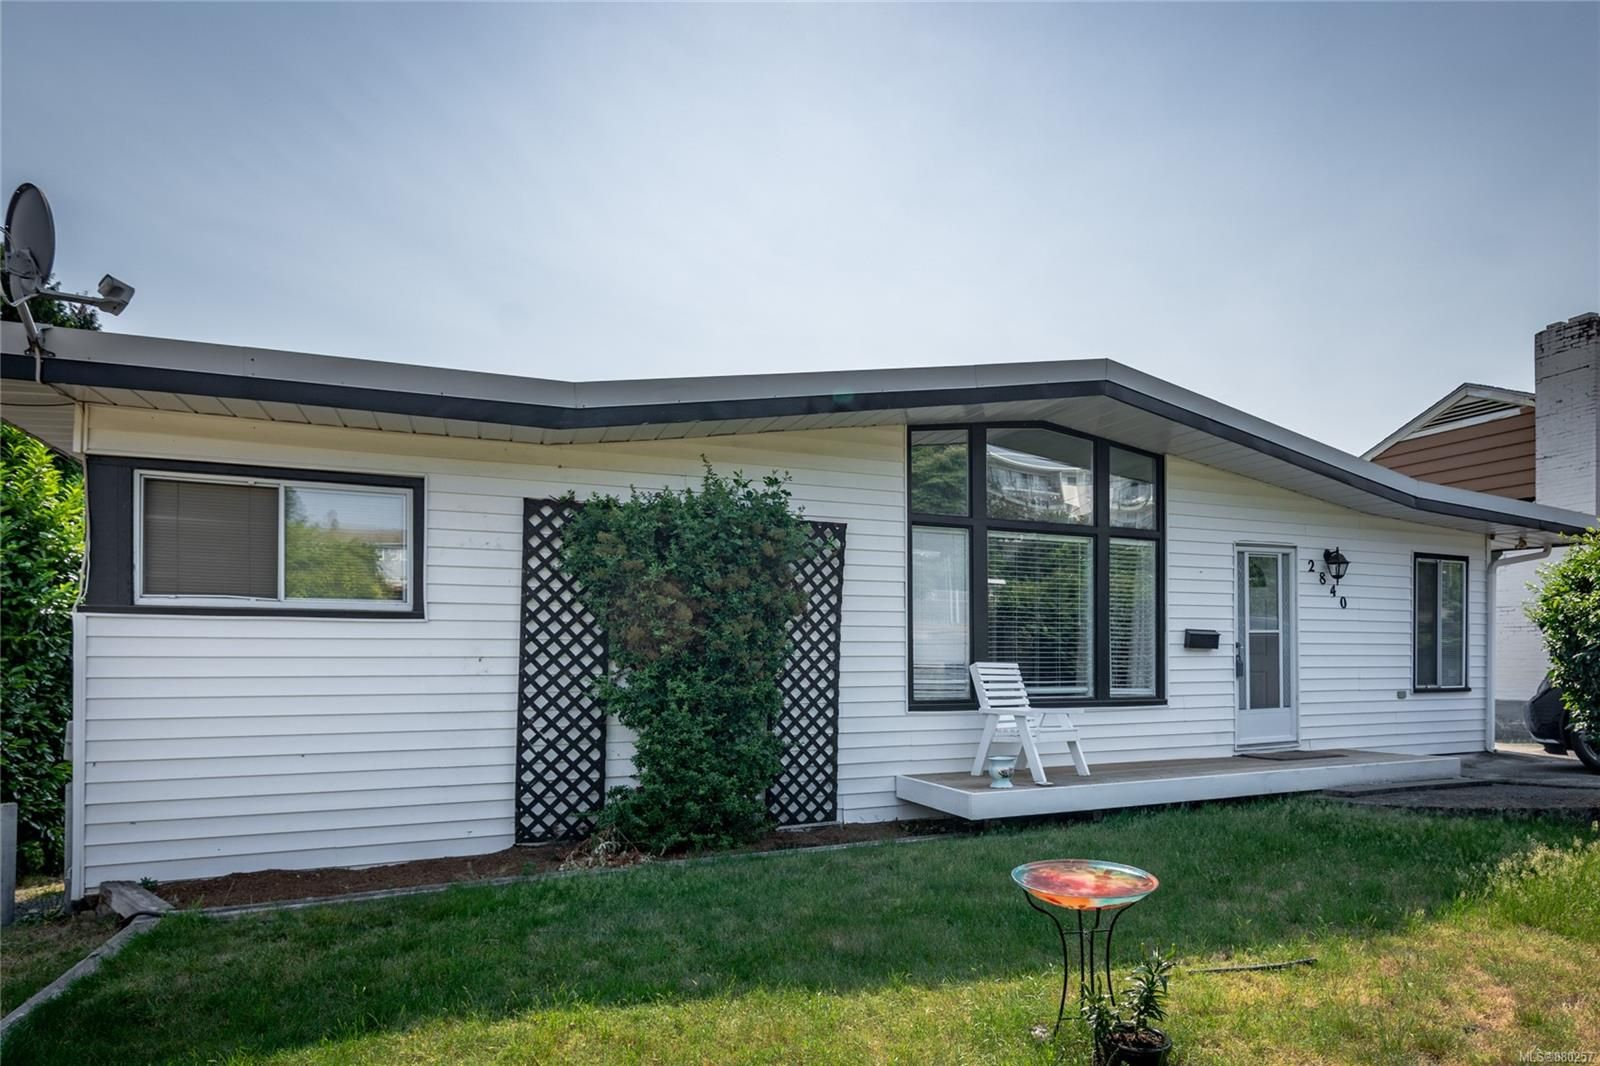 Main Photo: 2840 Glenayr Dr in Nanaimo: Na Departure Bay House for sale : MLS®# 880257